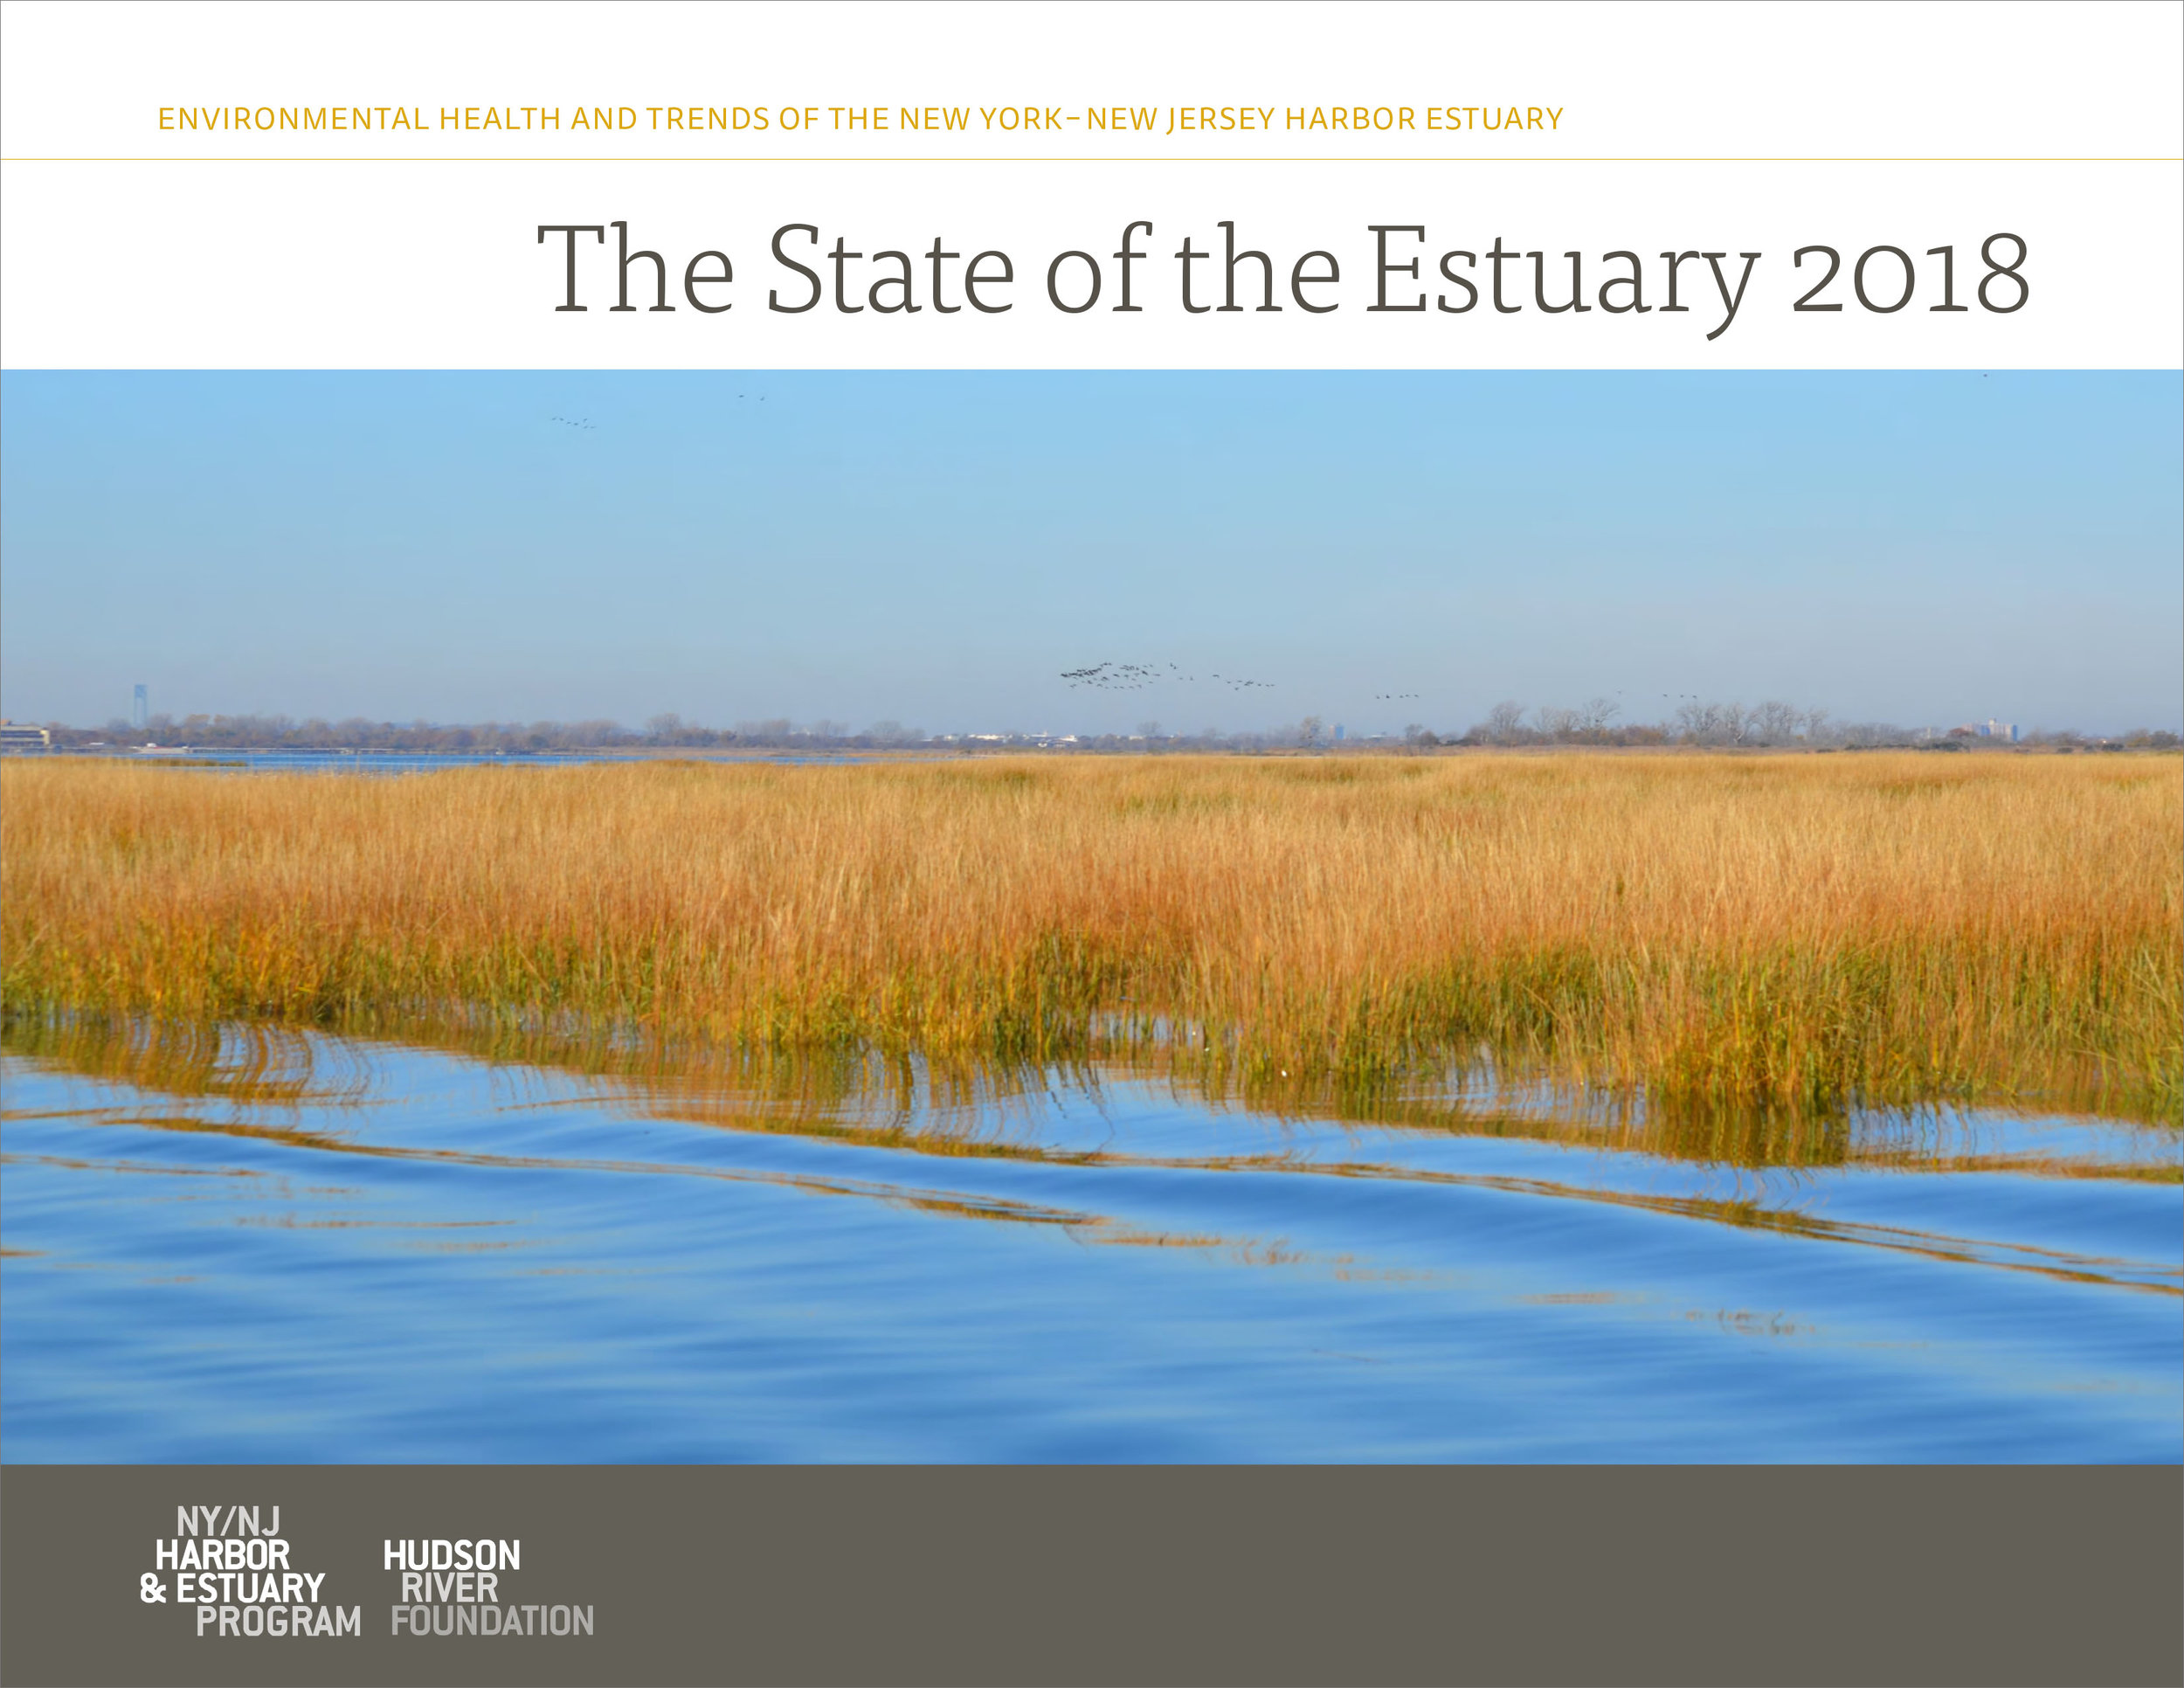 The State of the Estuary 2018